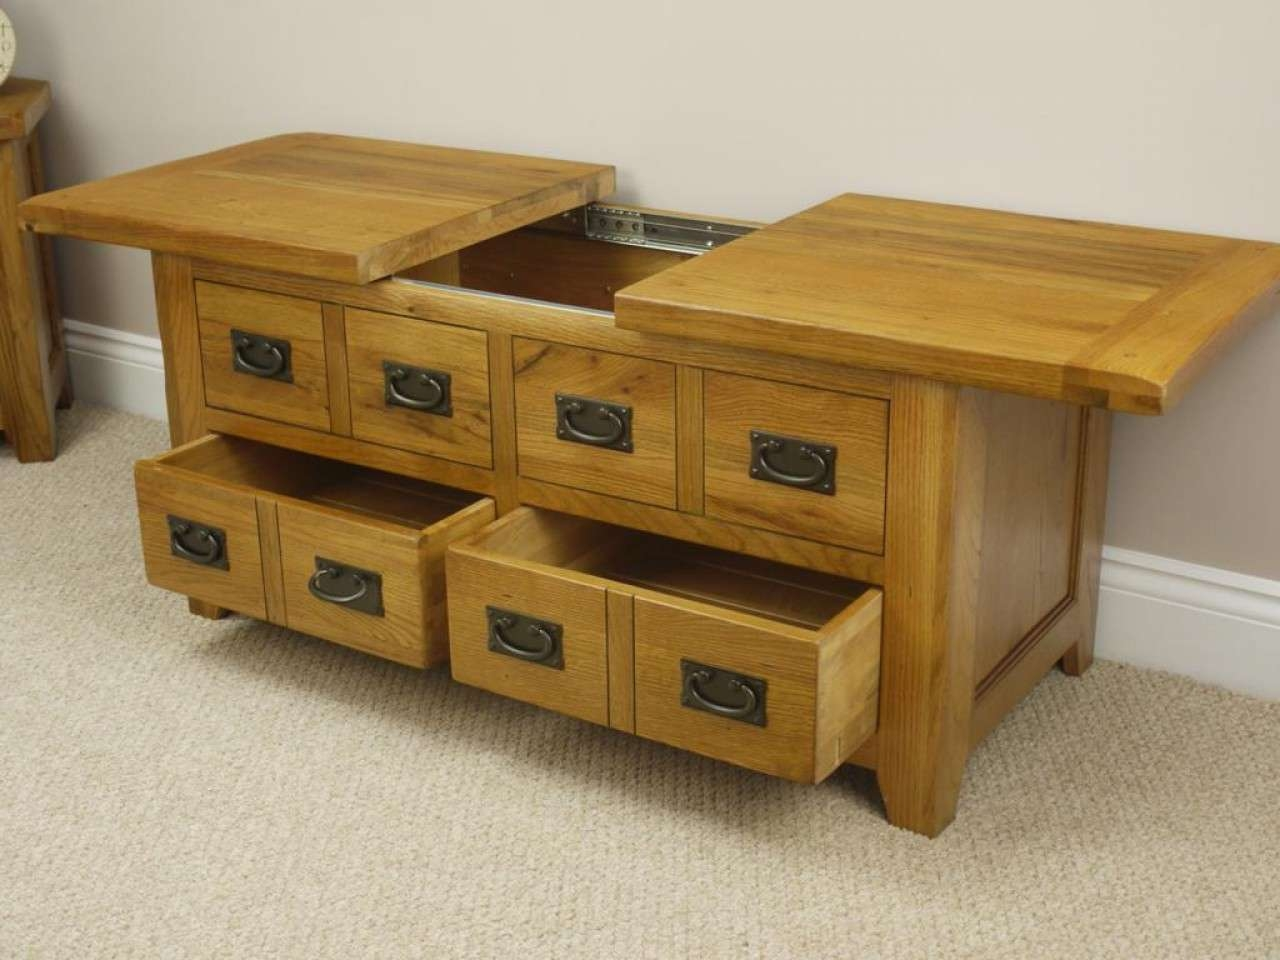 Rustic Storage Coffee Table Style — Home Design Ideas Within Well Known Square Coffee Table Storages (View 10 of 20)